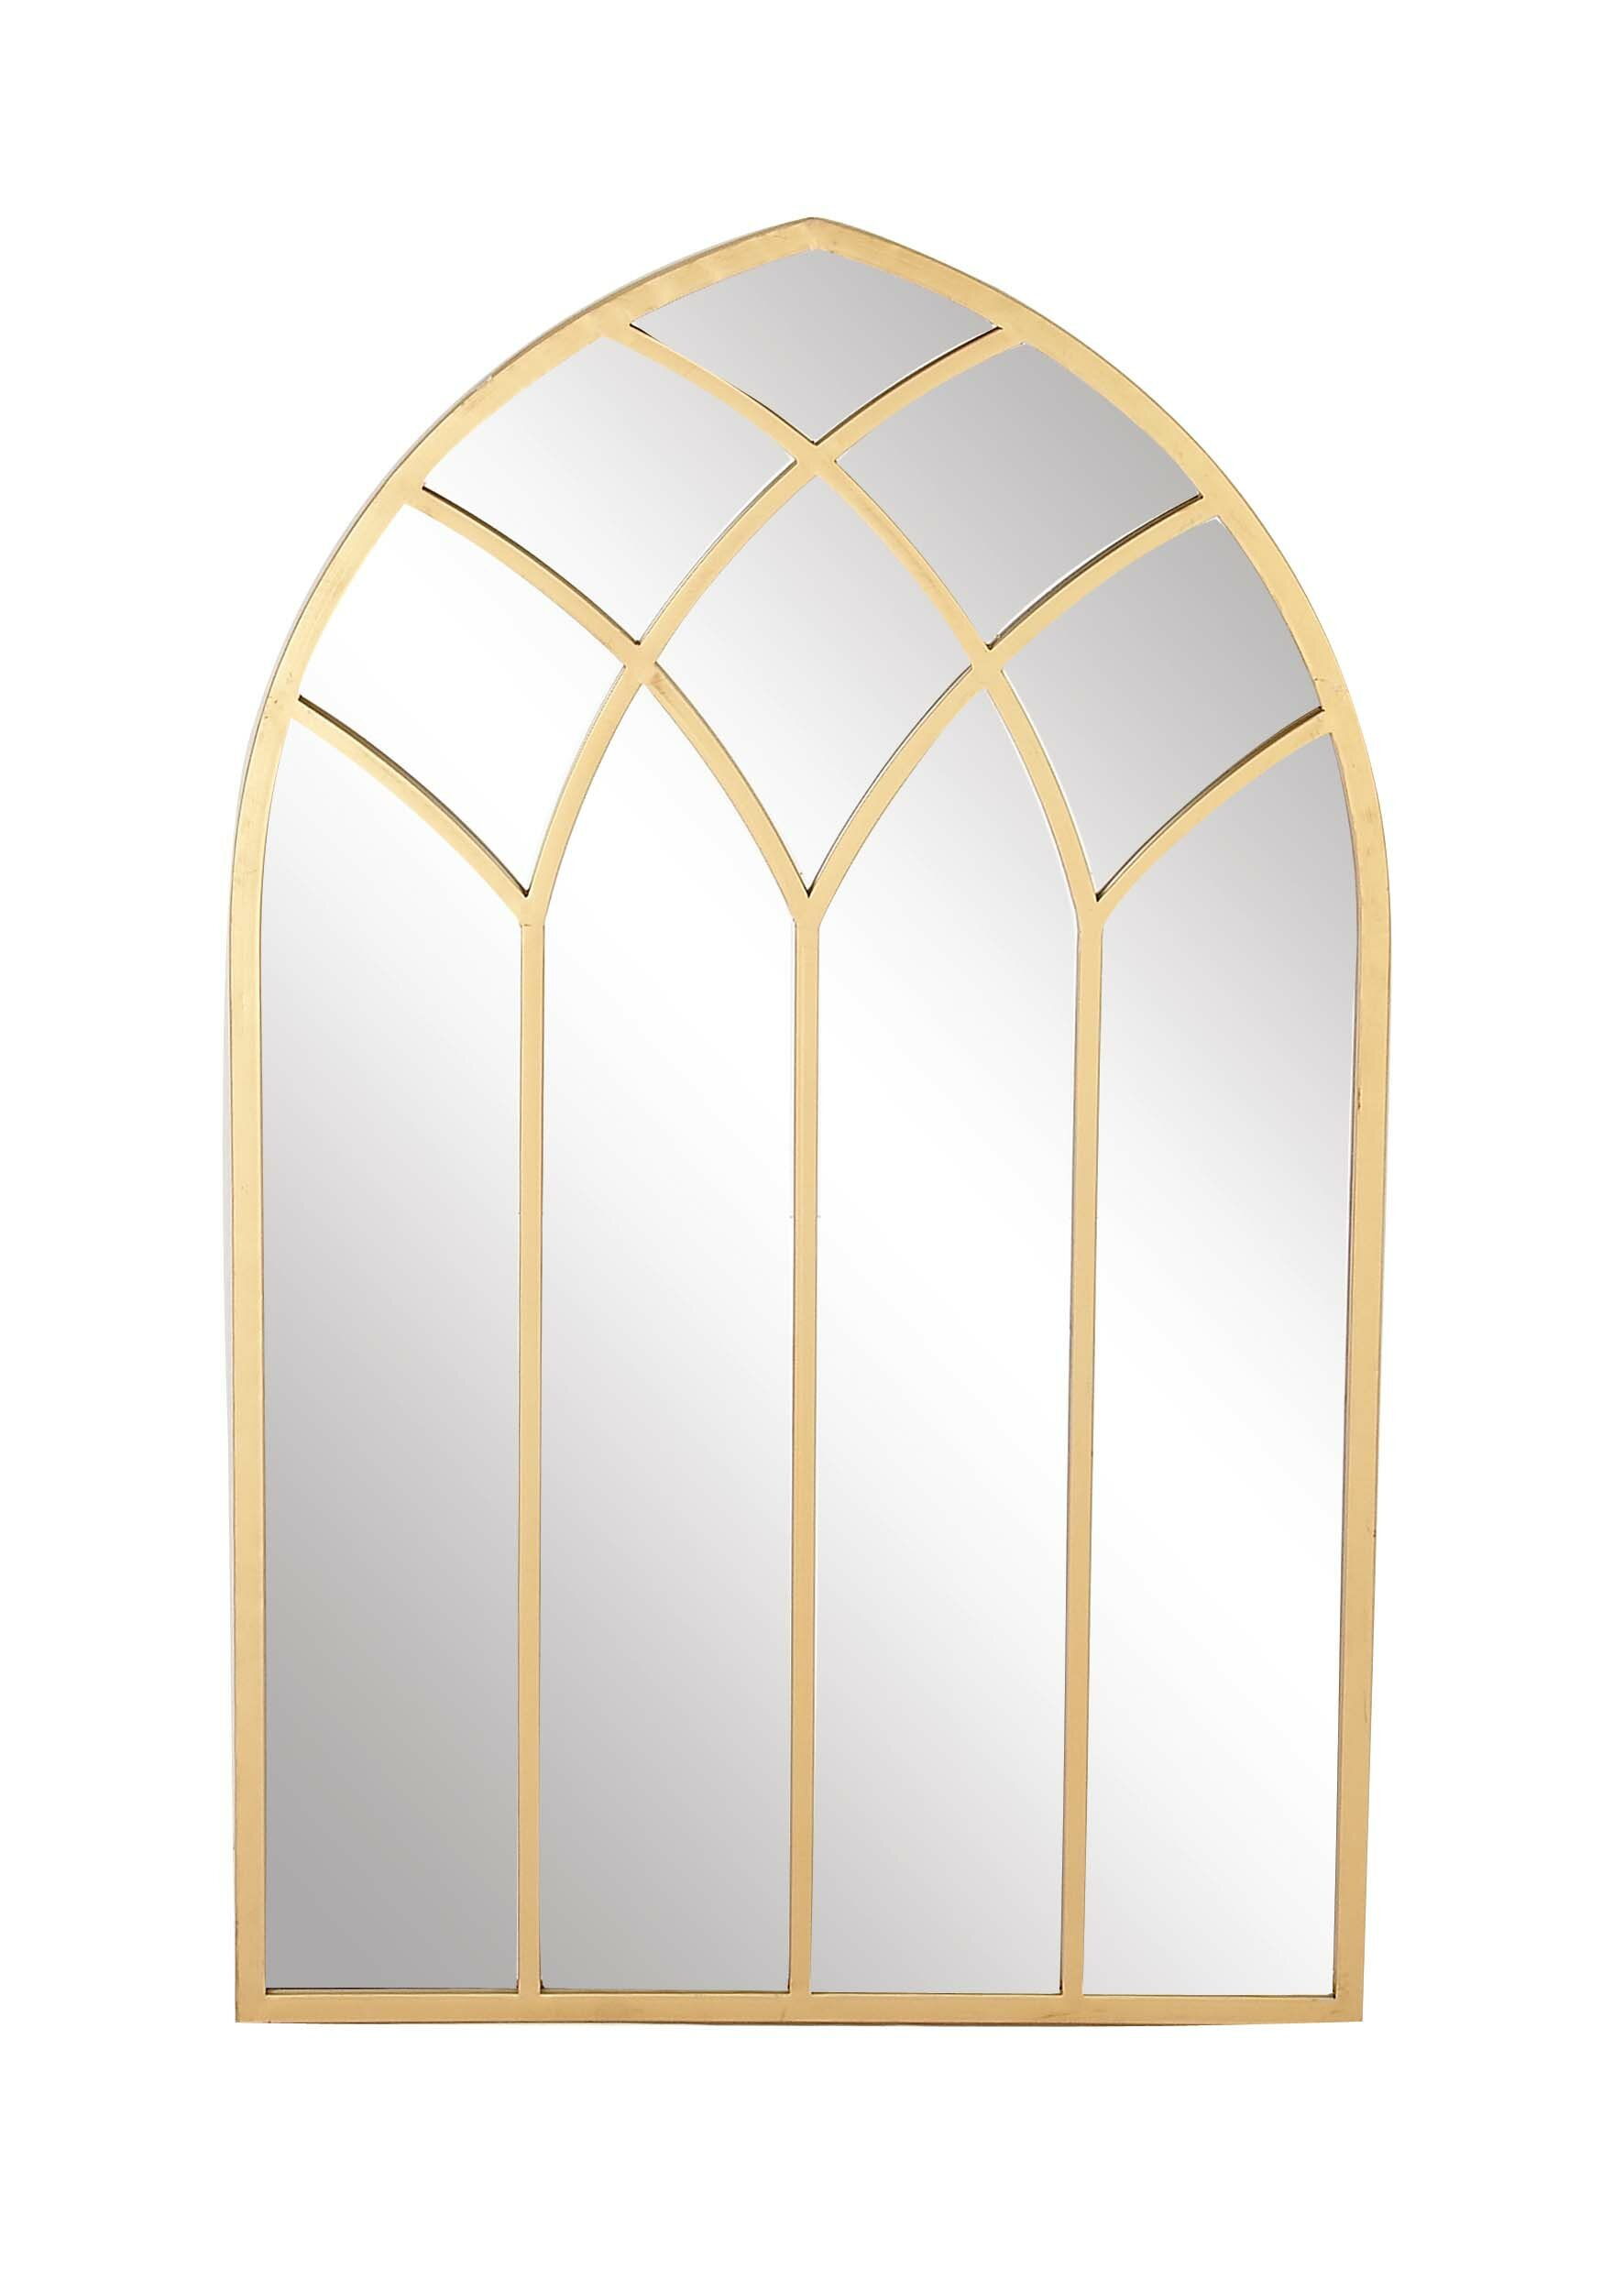 Darby Home Co Modern Framed Arched Window Wall Decor Reviews Wayfair